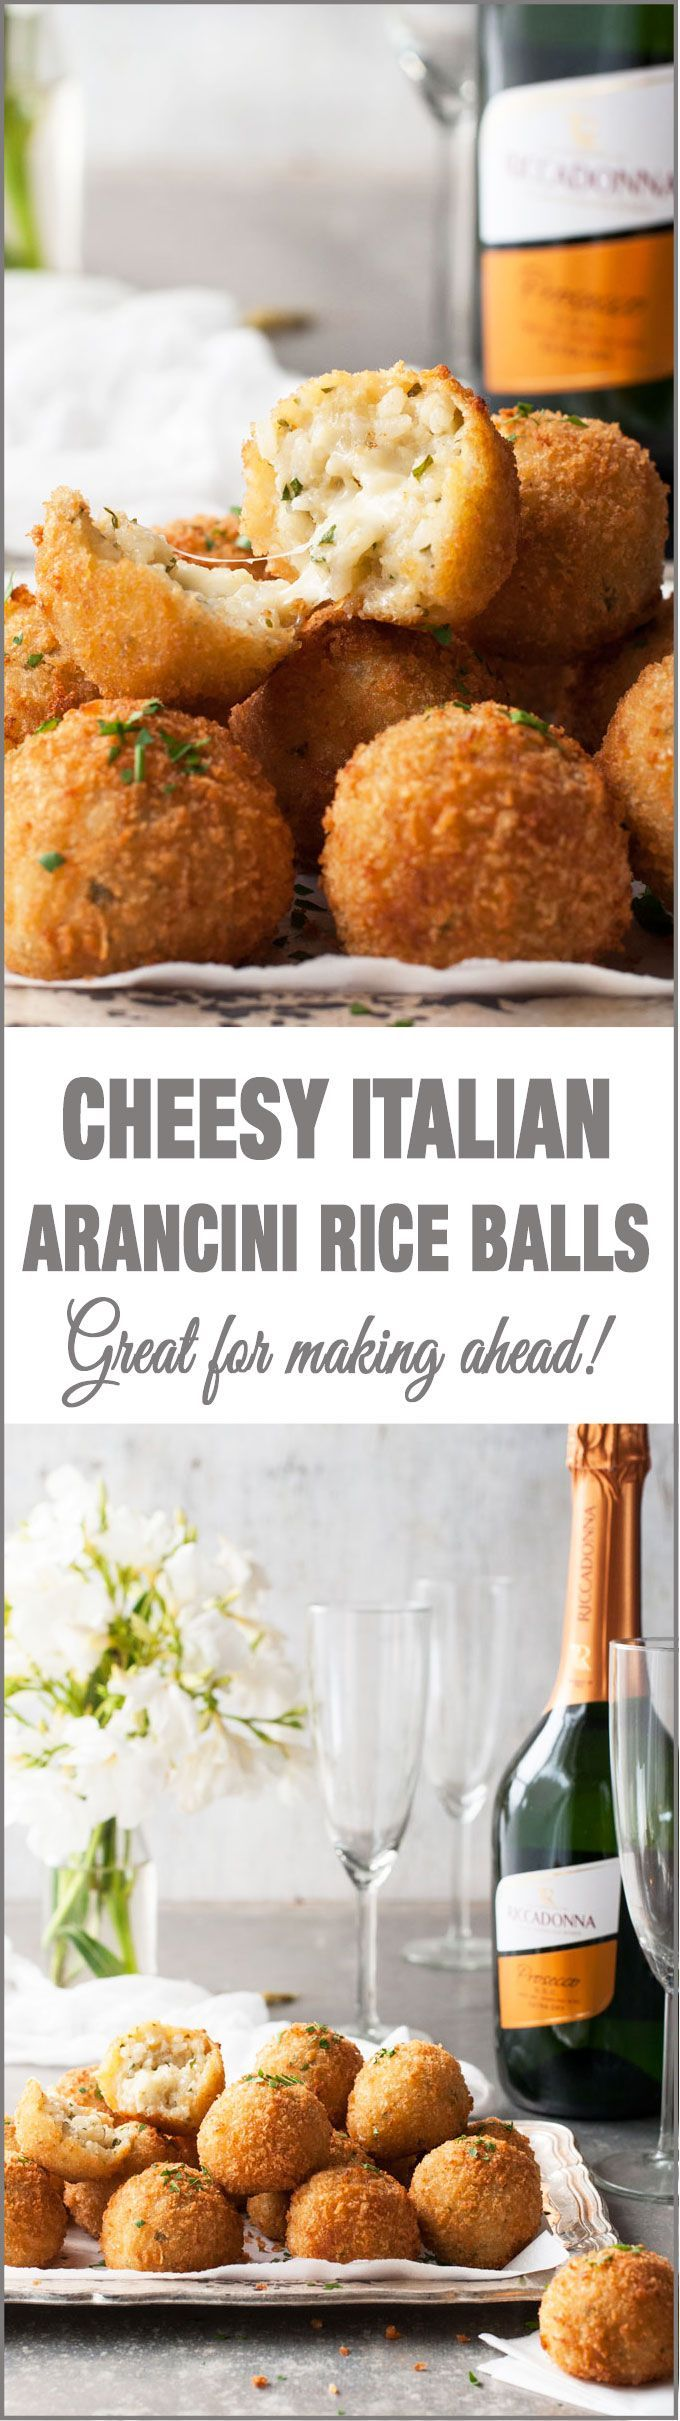 Cheesy Italian Arancini Rice Balls - Sensational for making ahead! More